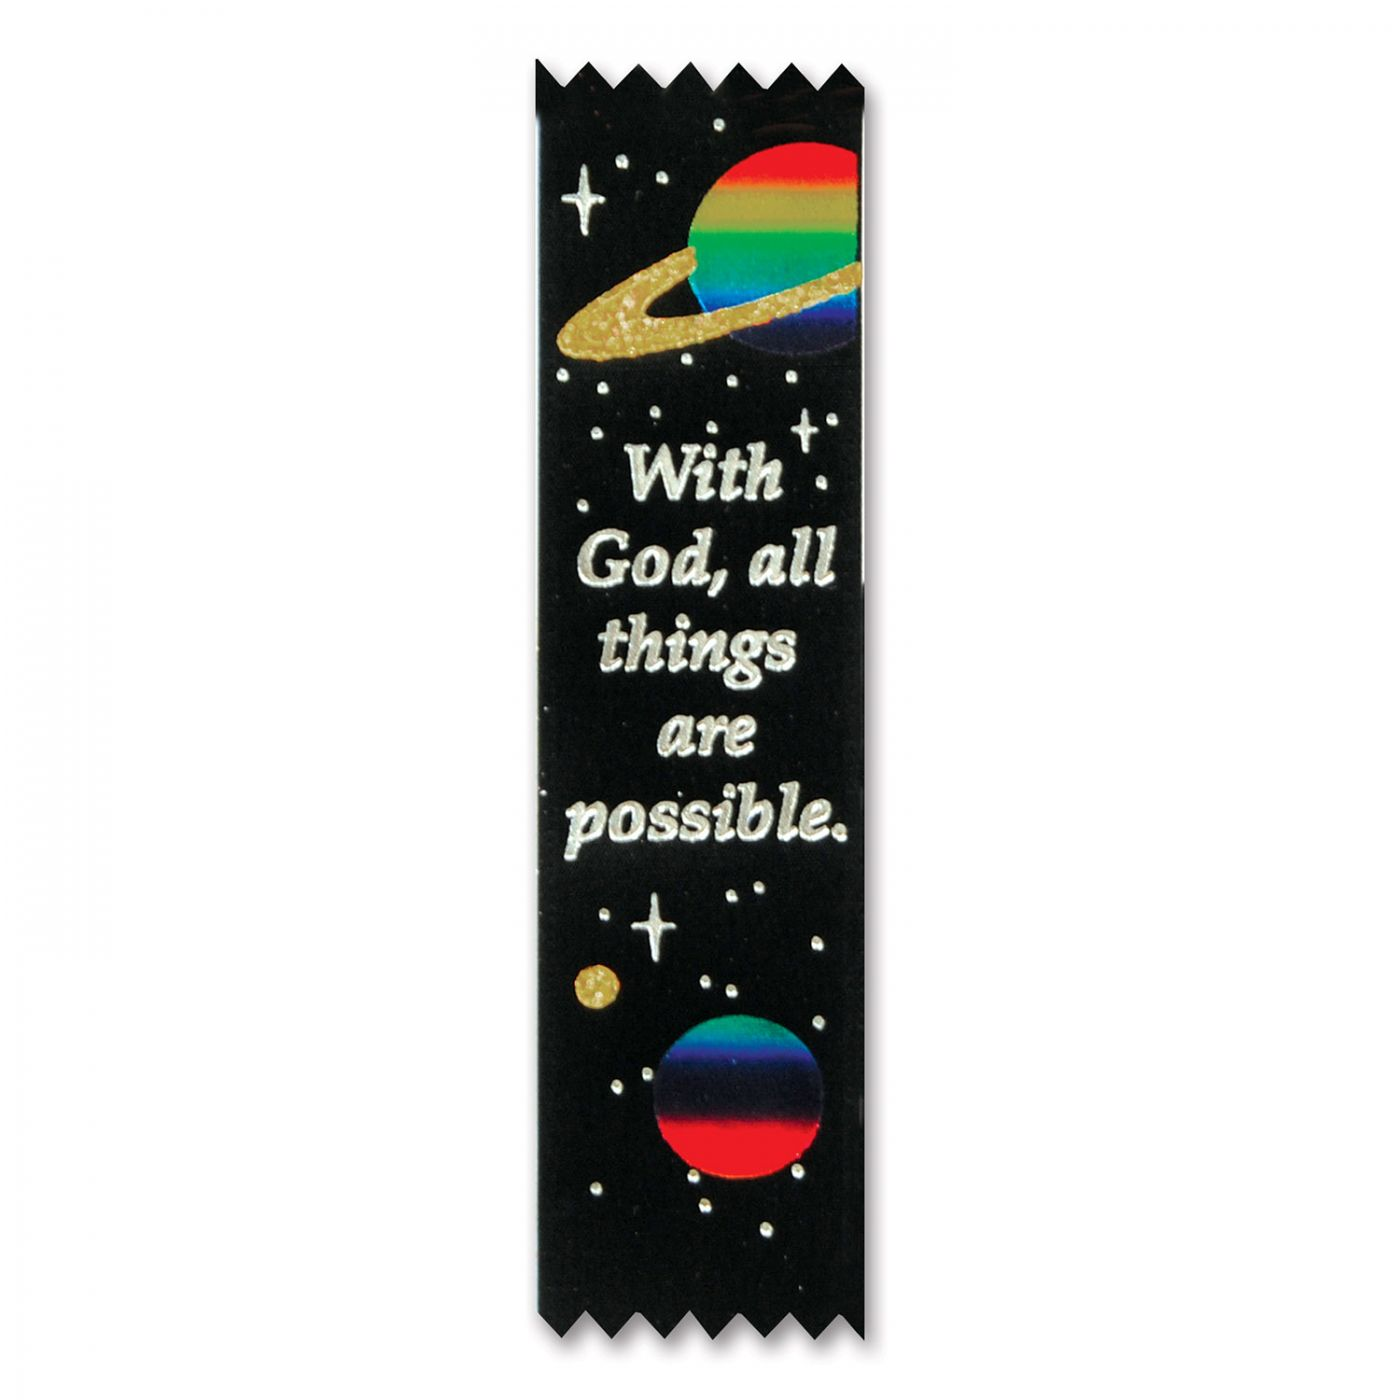 With God Things Possible Value Pack Rbns (3) image